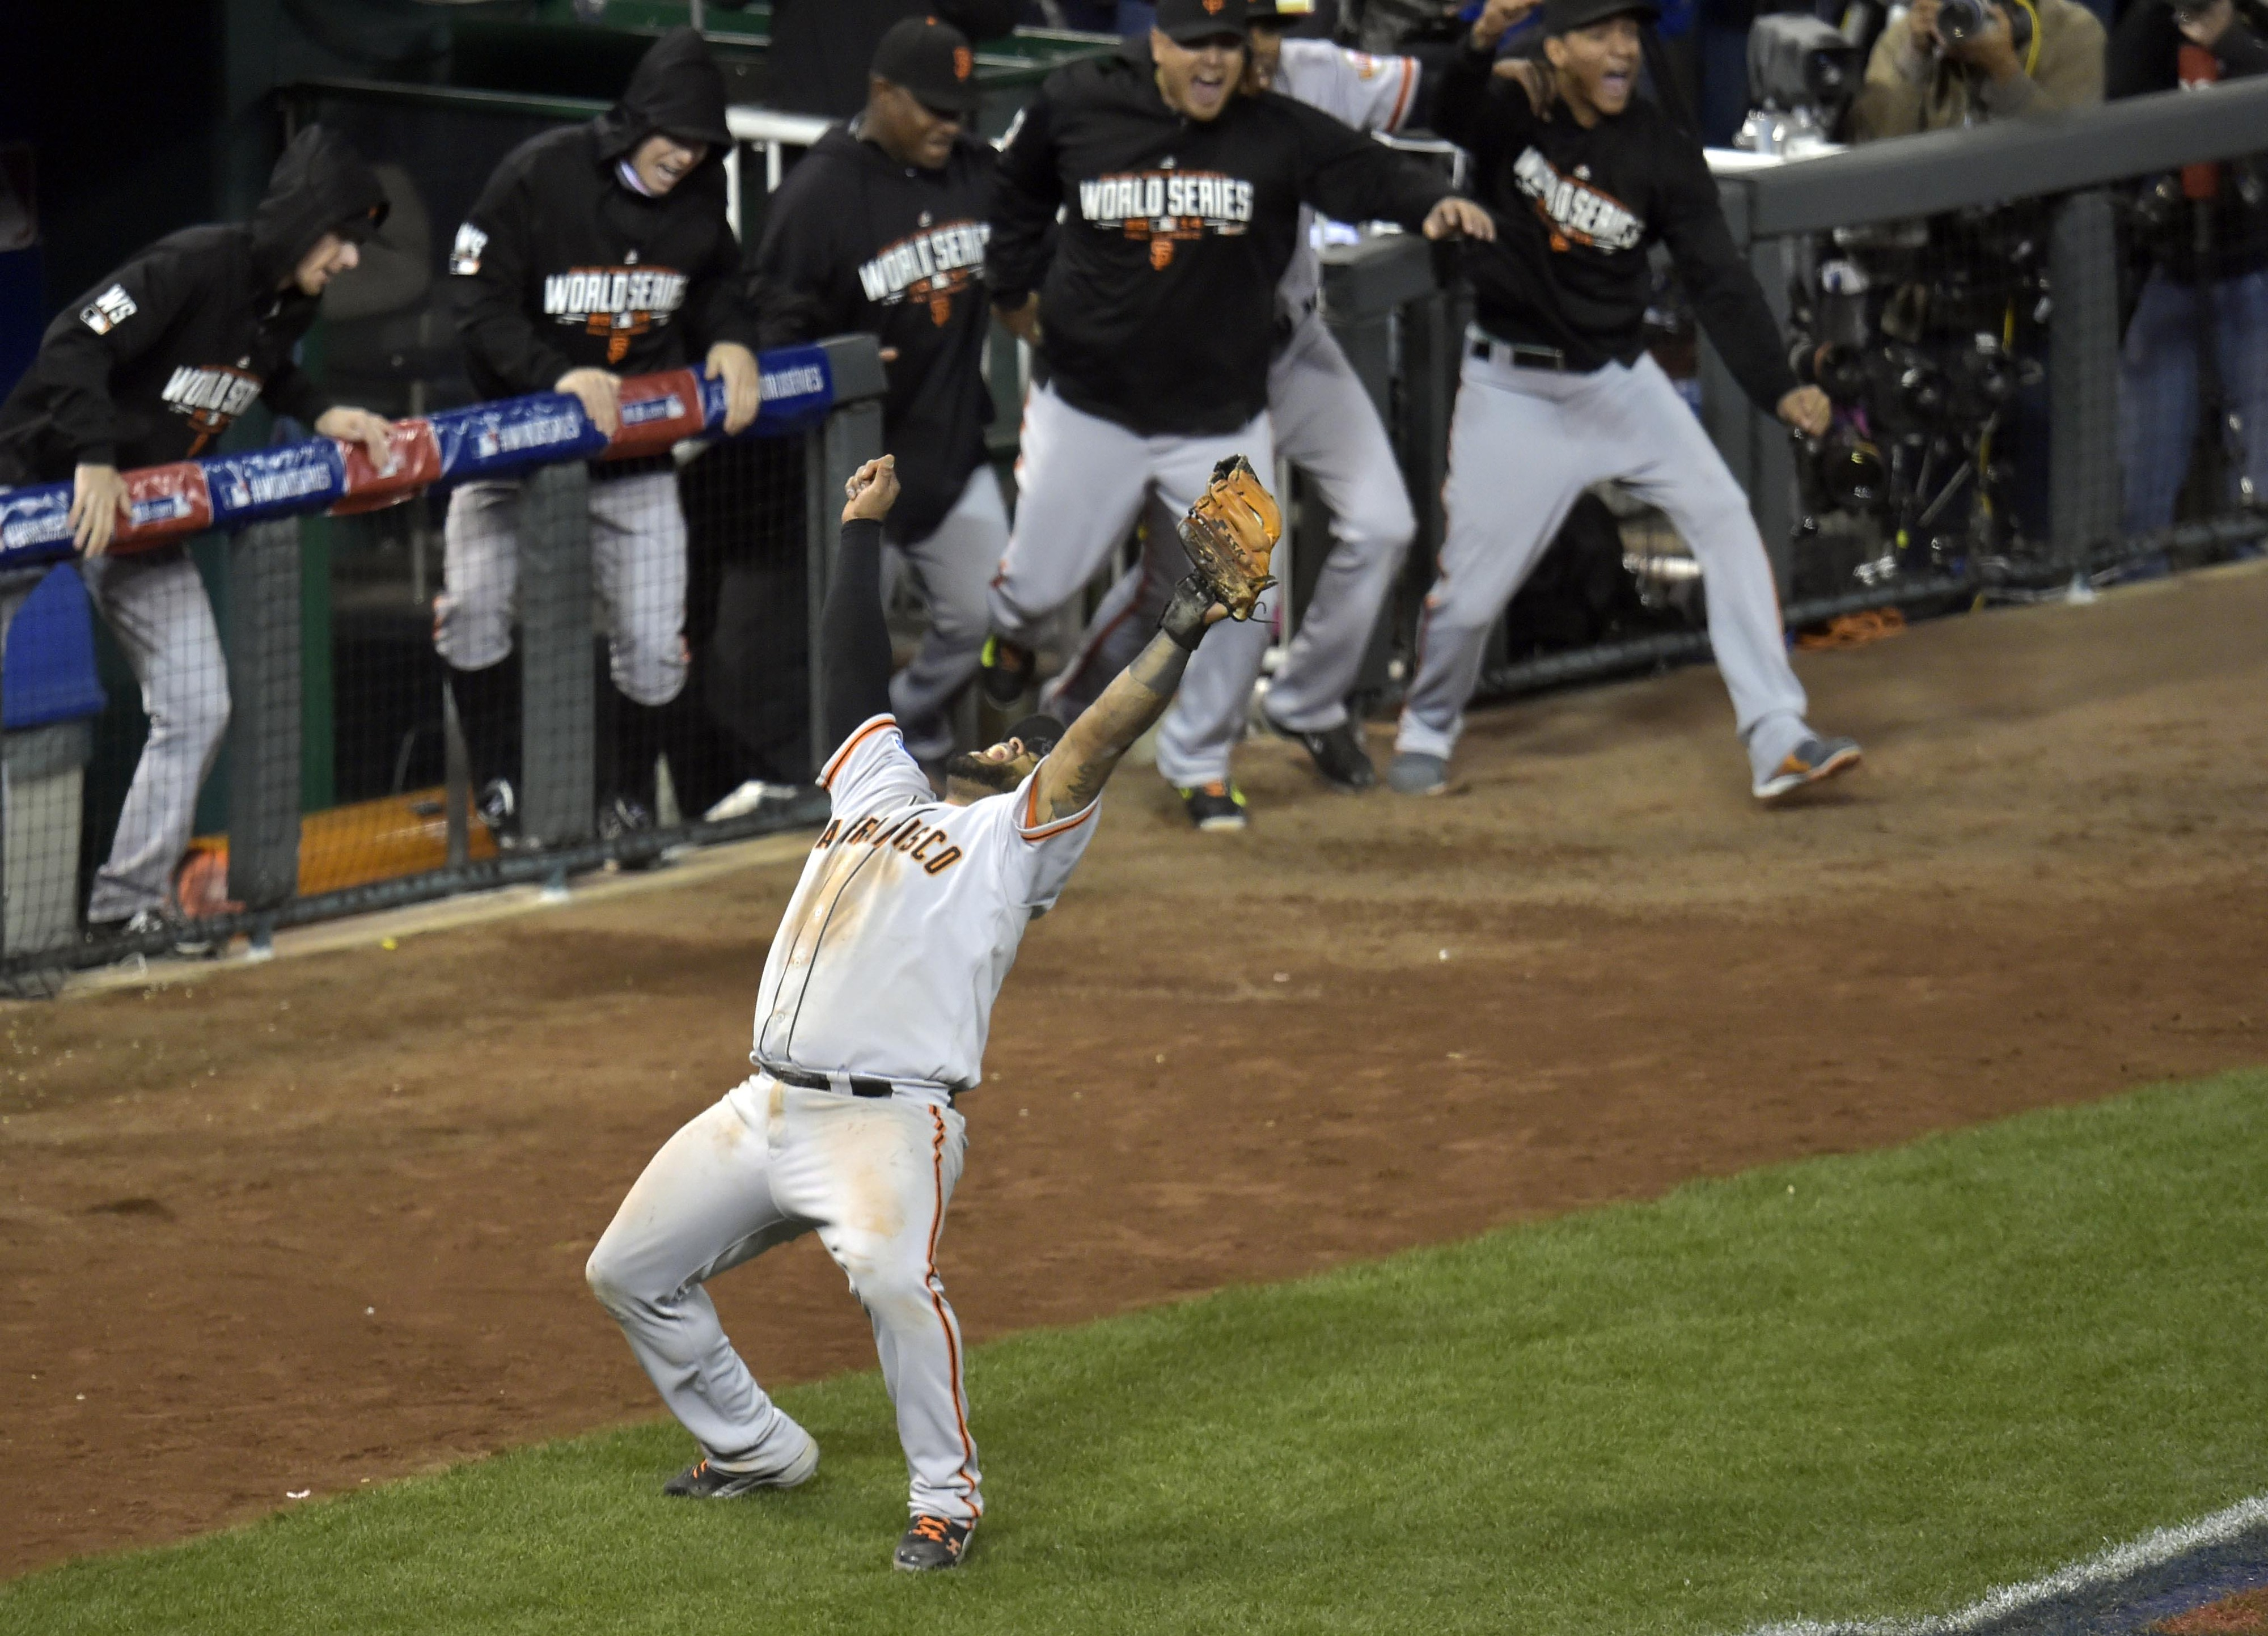 Giants give Royals a lesson in old school in Game 7